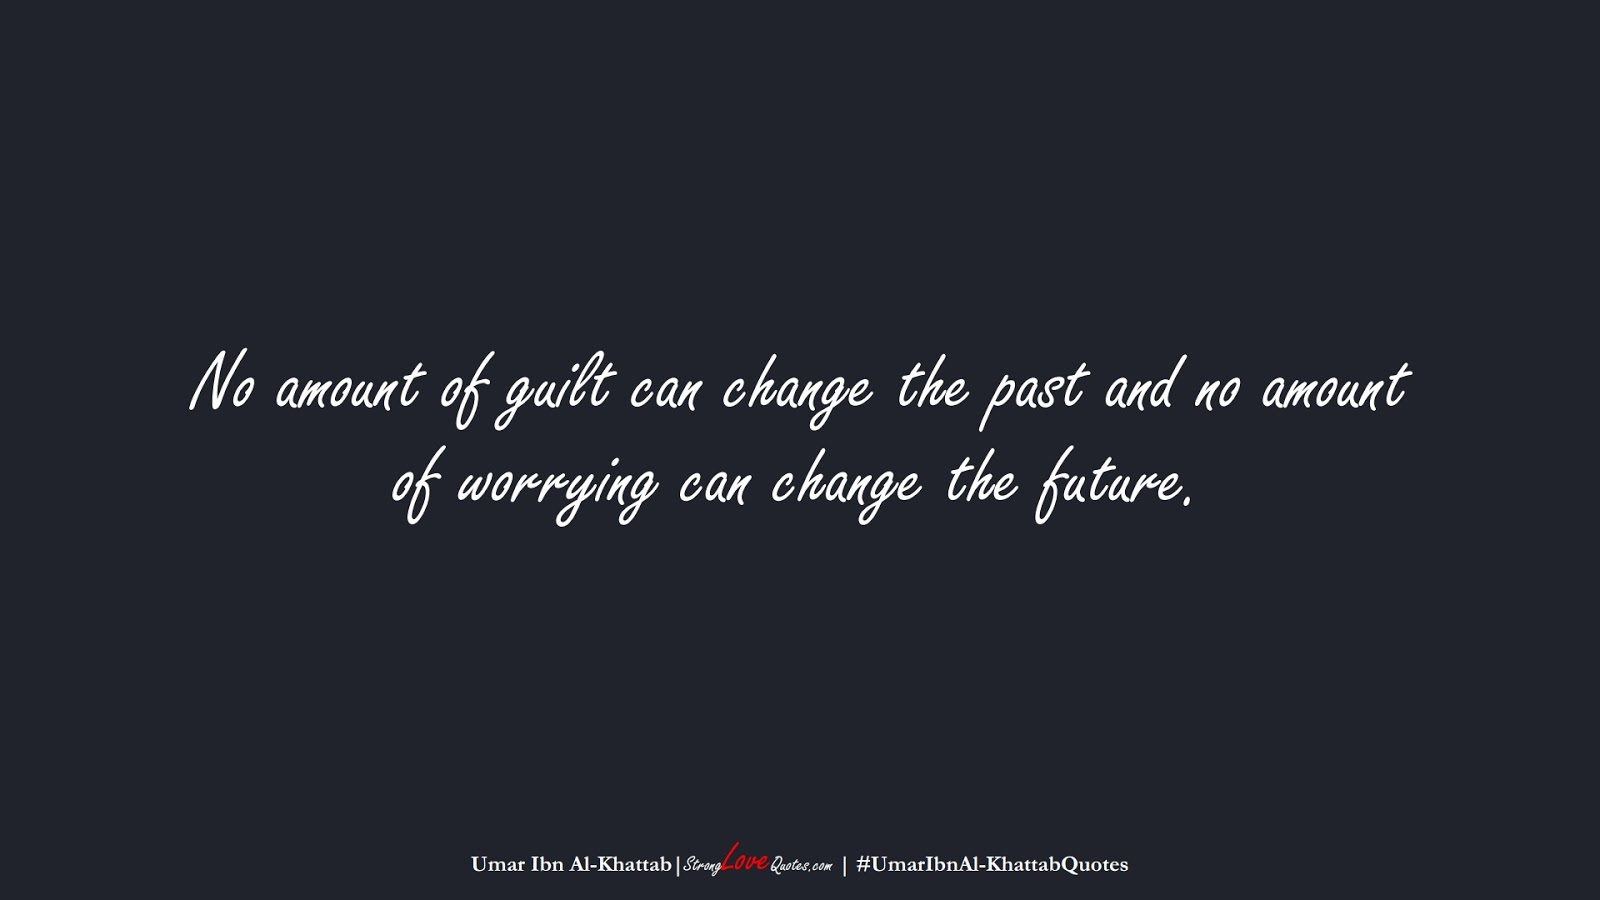 No amount of guilt can change the past and no amount of worrying can change the future. (Umar Ibn Al-Khattab);  #UmarIbnAl-KhattabQuotes